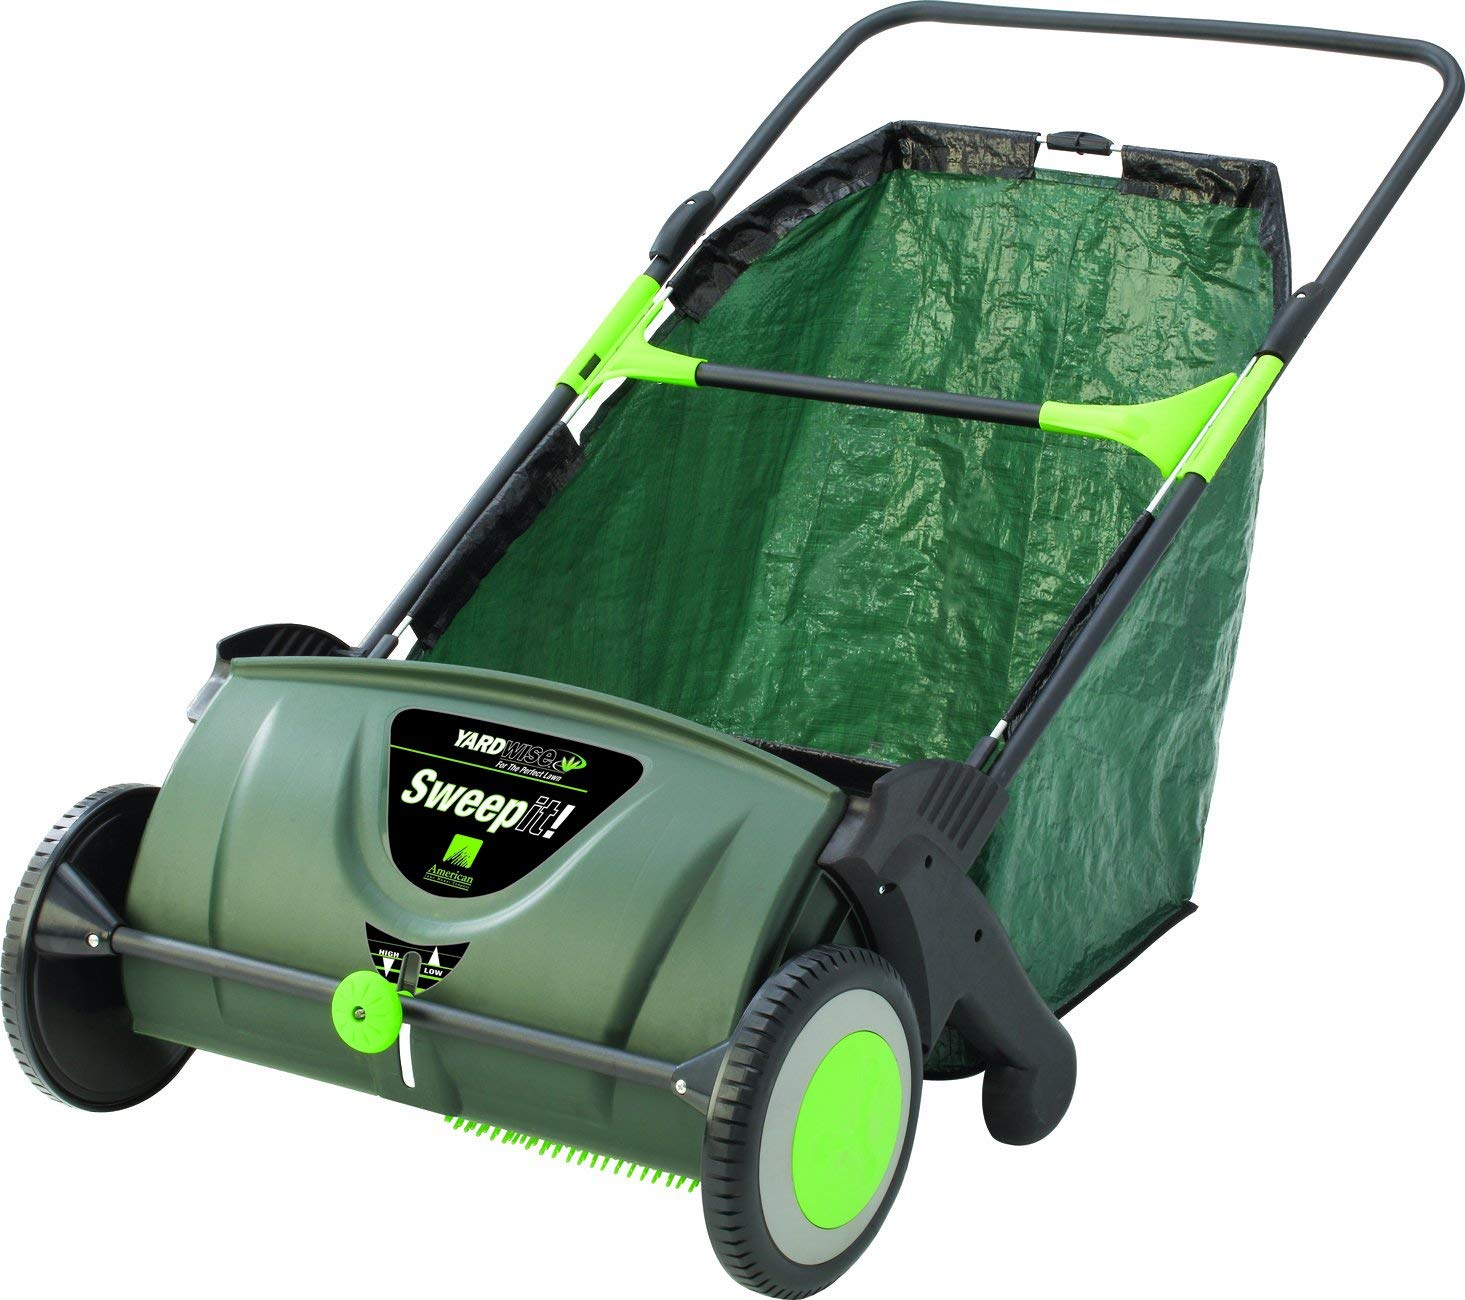 Yardwise 23630-YW Sweep It Push Lawn Sweeper